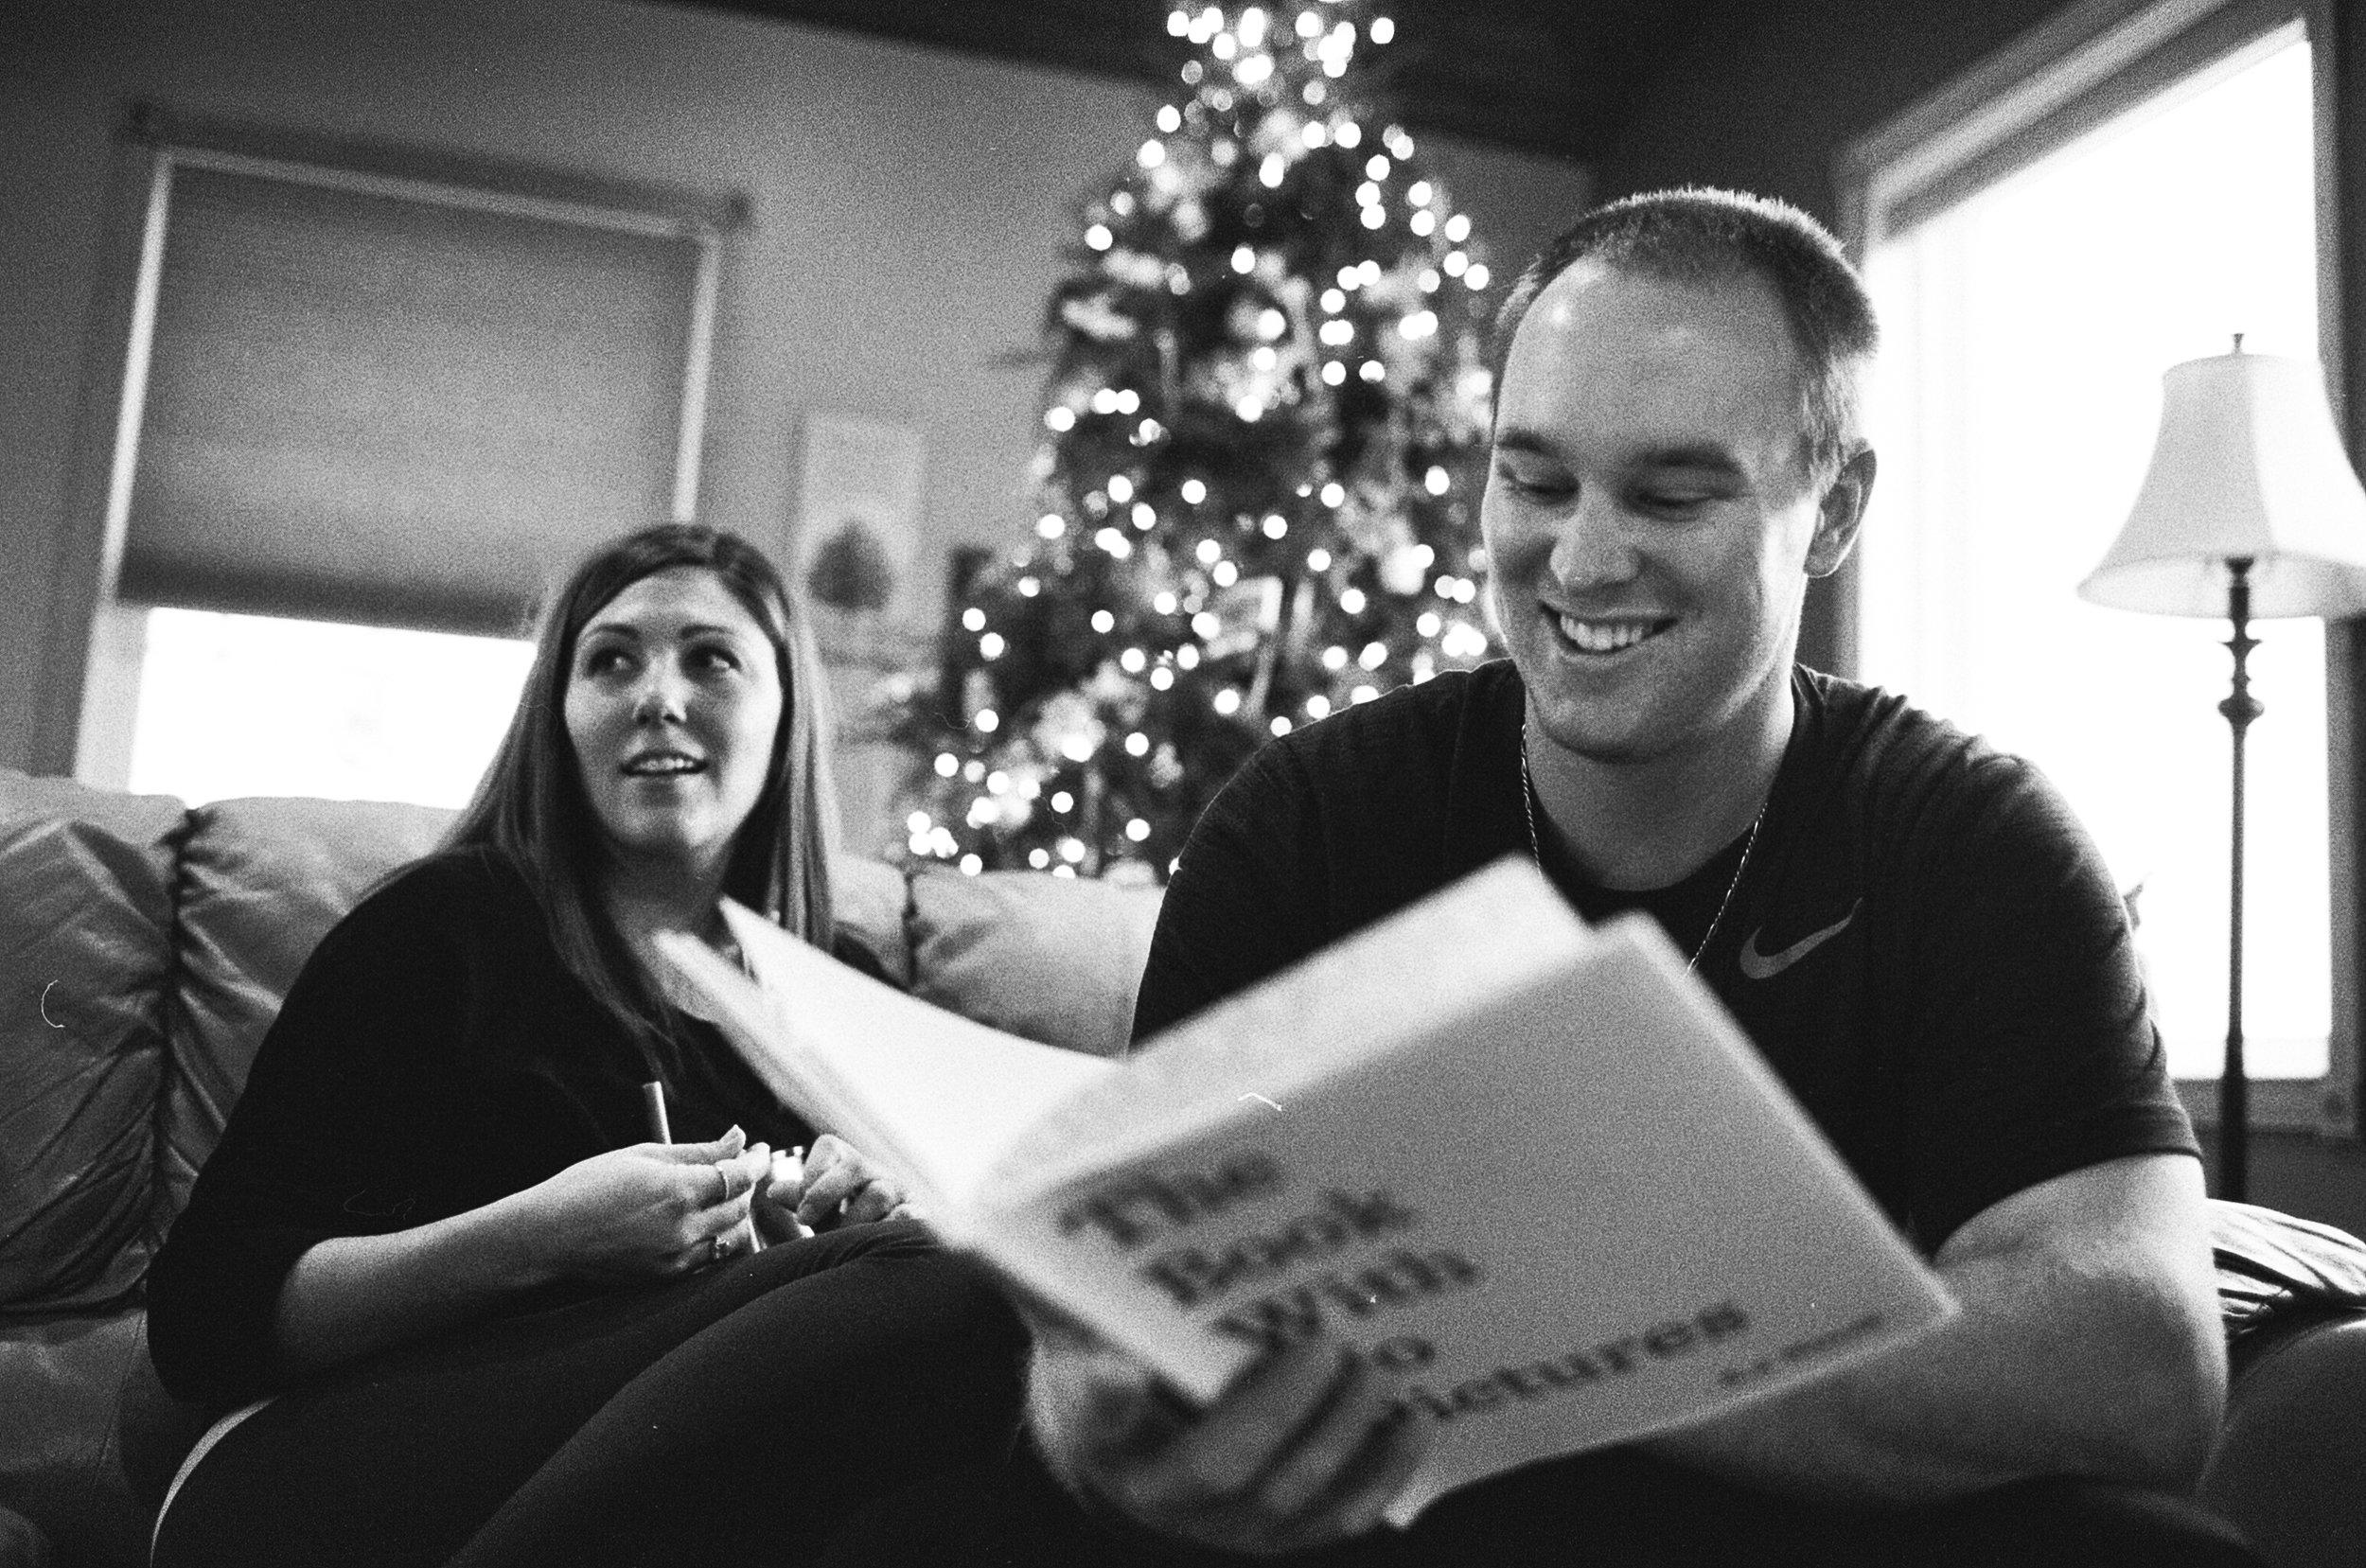 Small Christmas Wedding Photographer at Home Black and White Film